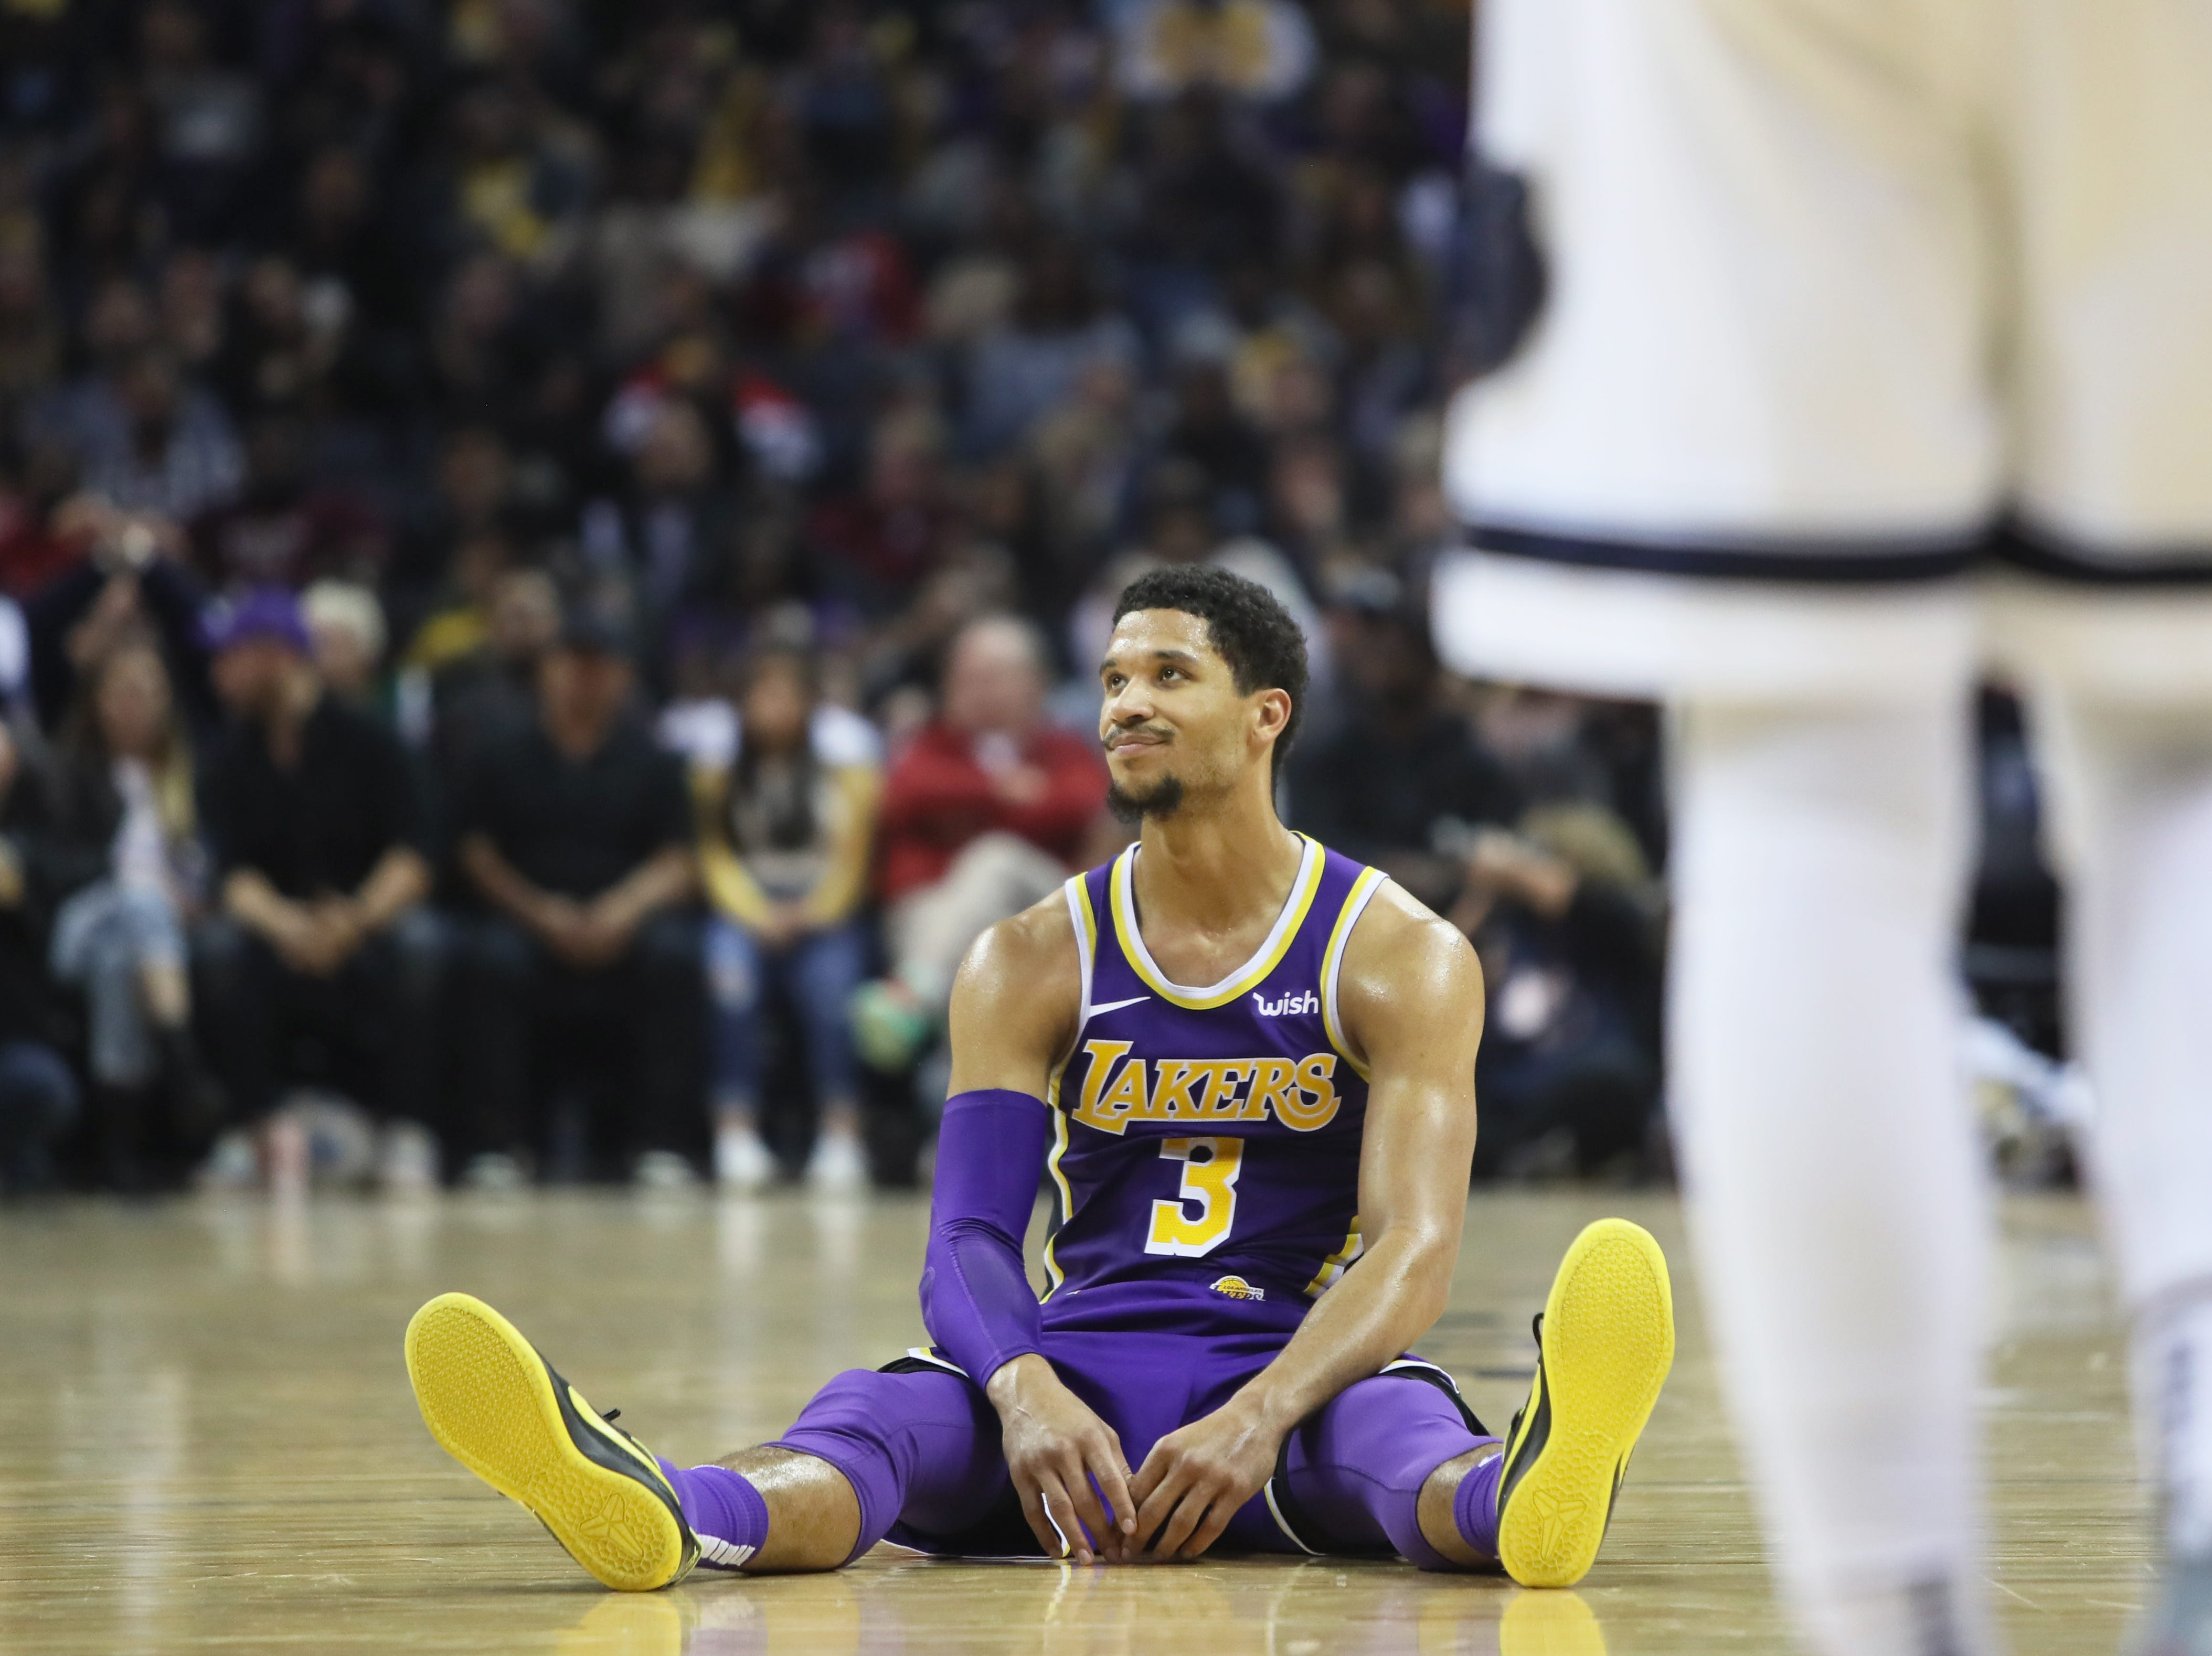 Los Angeles Lakers fguard Josh Hart sits on the floor after causing a foul during against the Memphis Grizzlies during their game at the FedExForum on Saturday, Dec. 8, 2018.